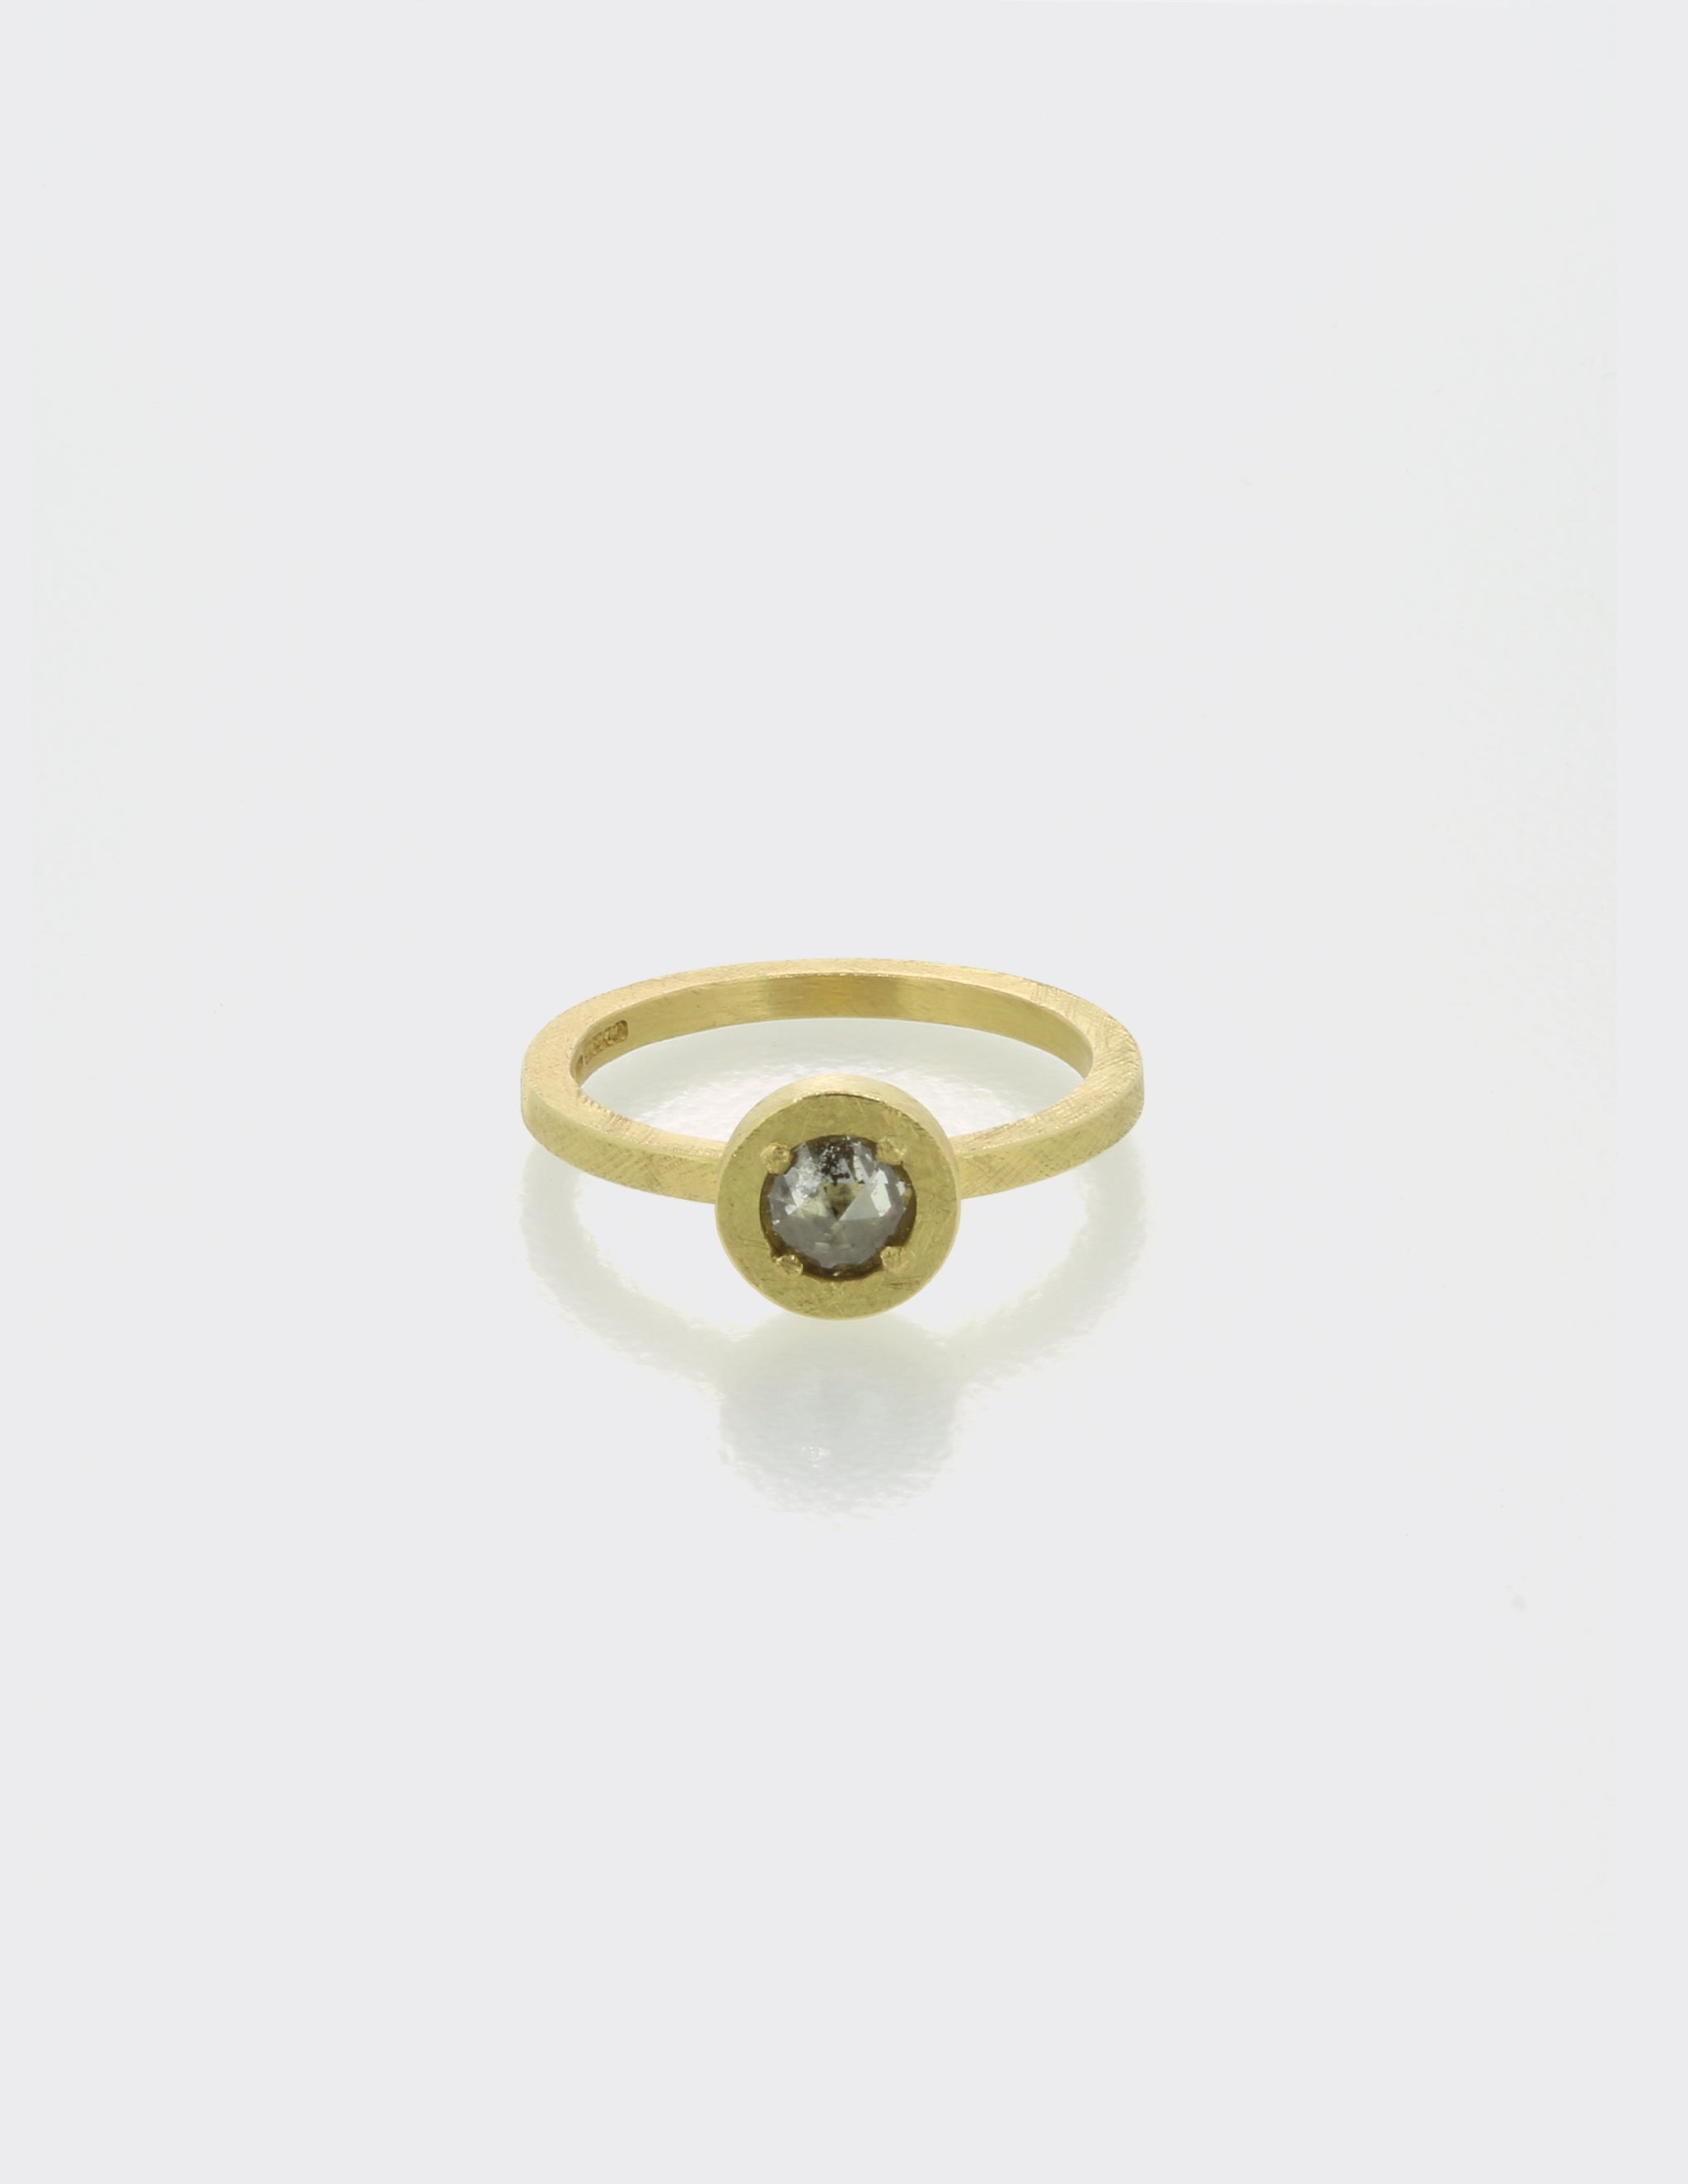 Rim ring with brown diamond